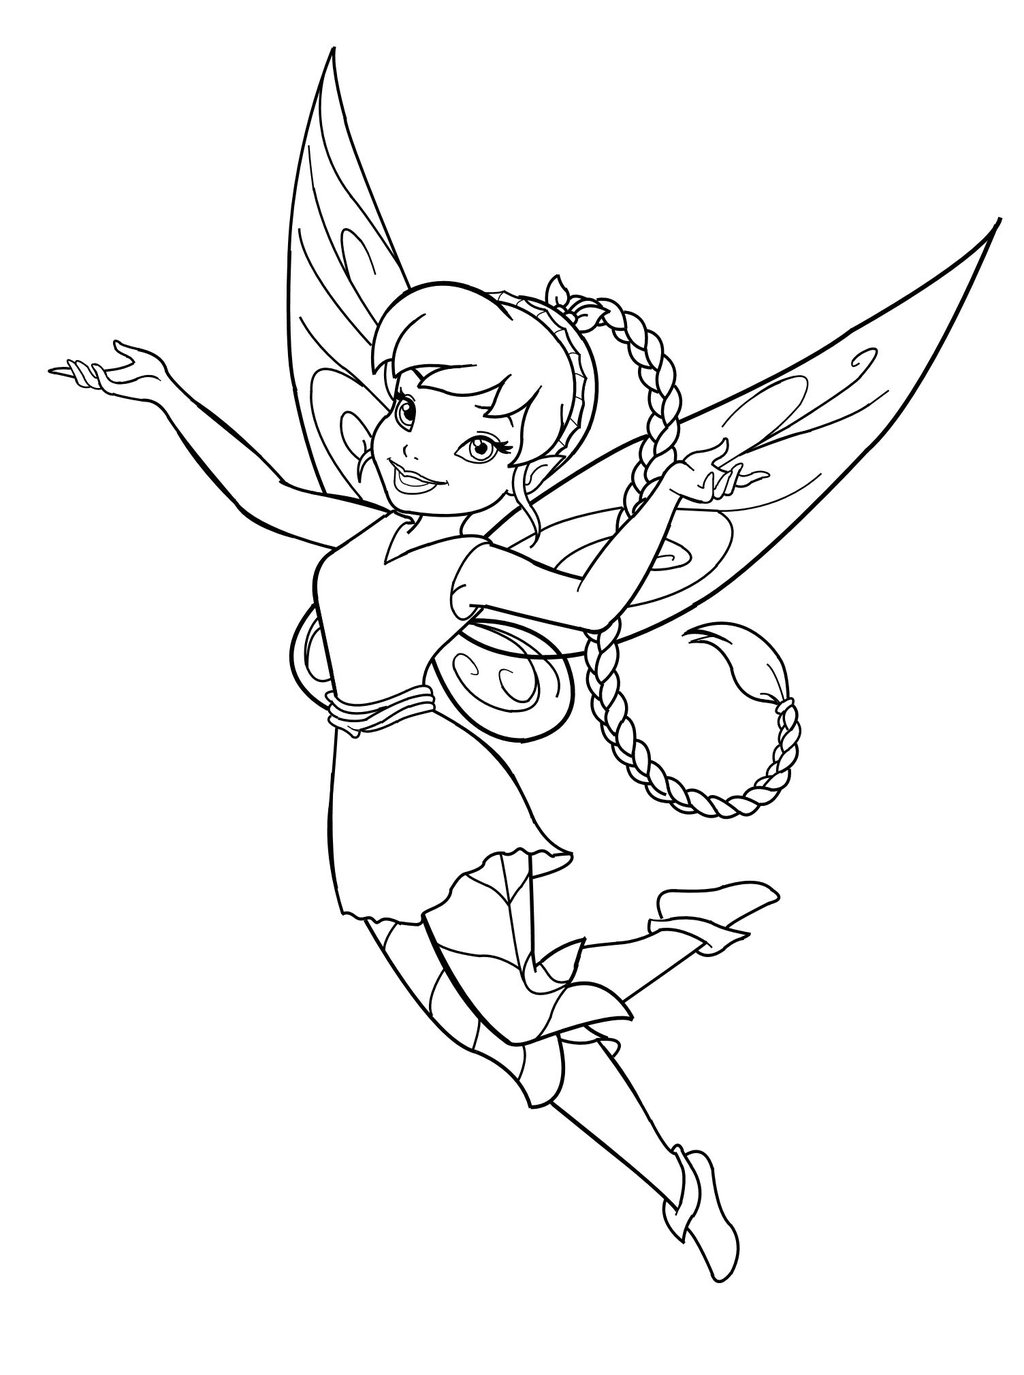 coloring fairies for kids free printable fairy coloring pages for kids for fairies coloring kids